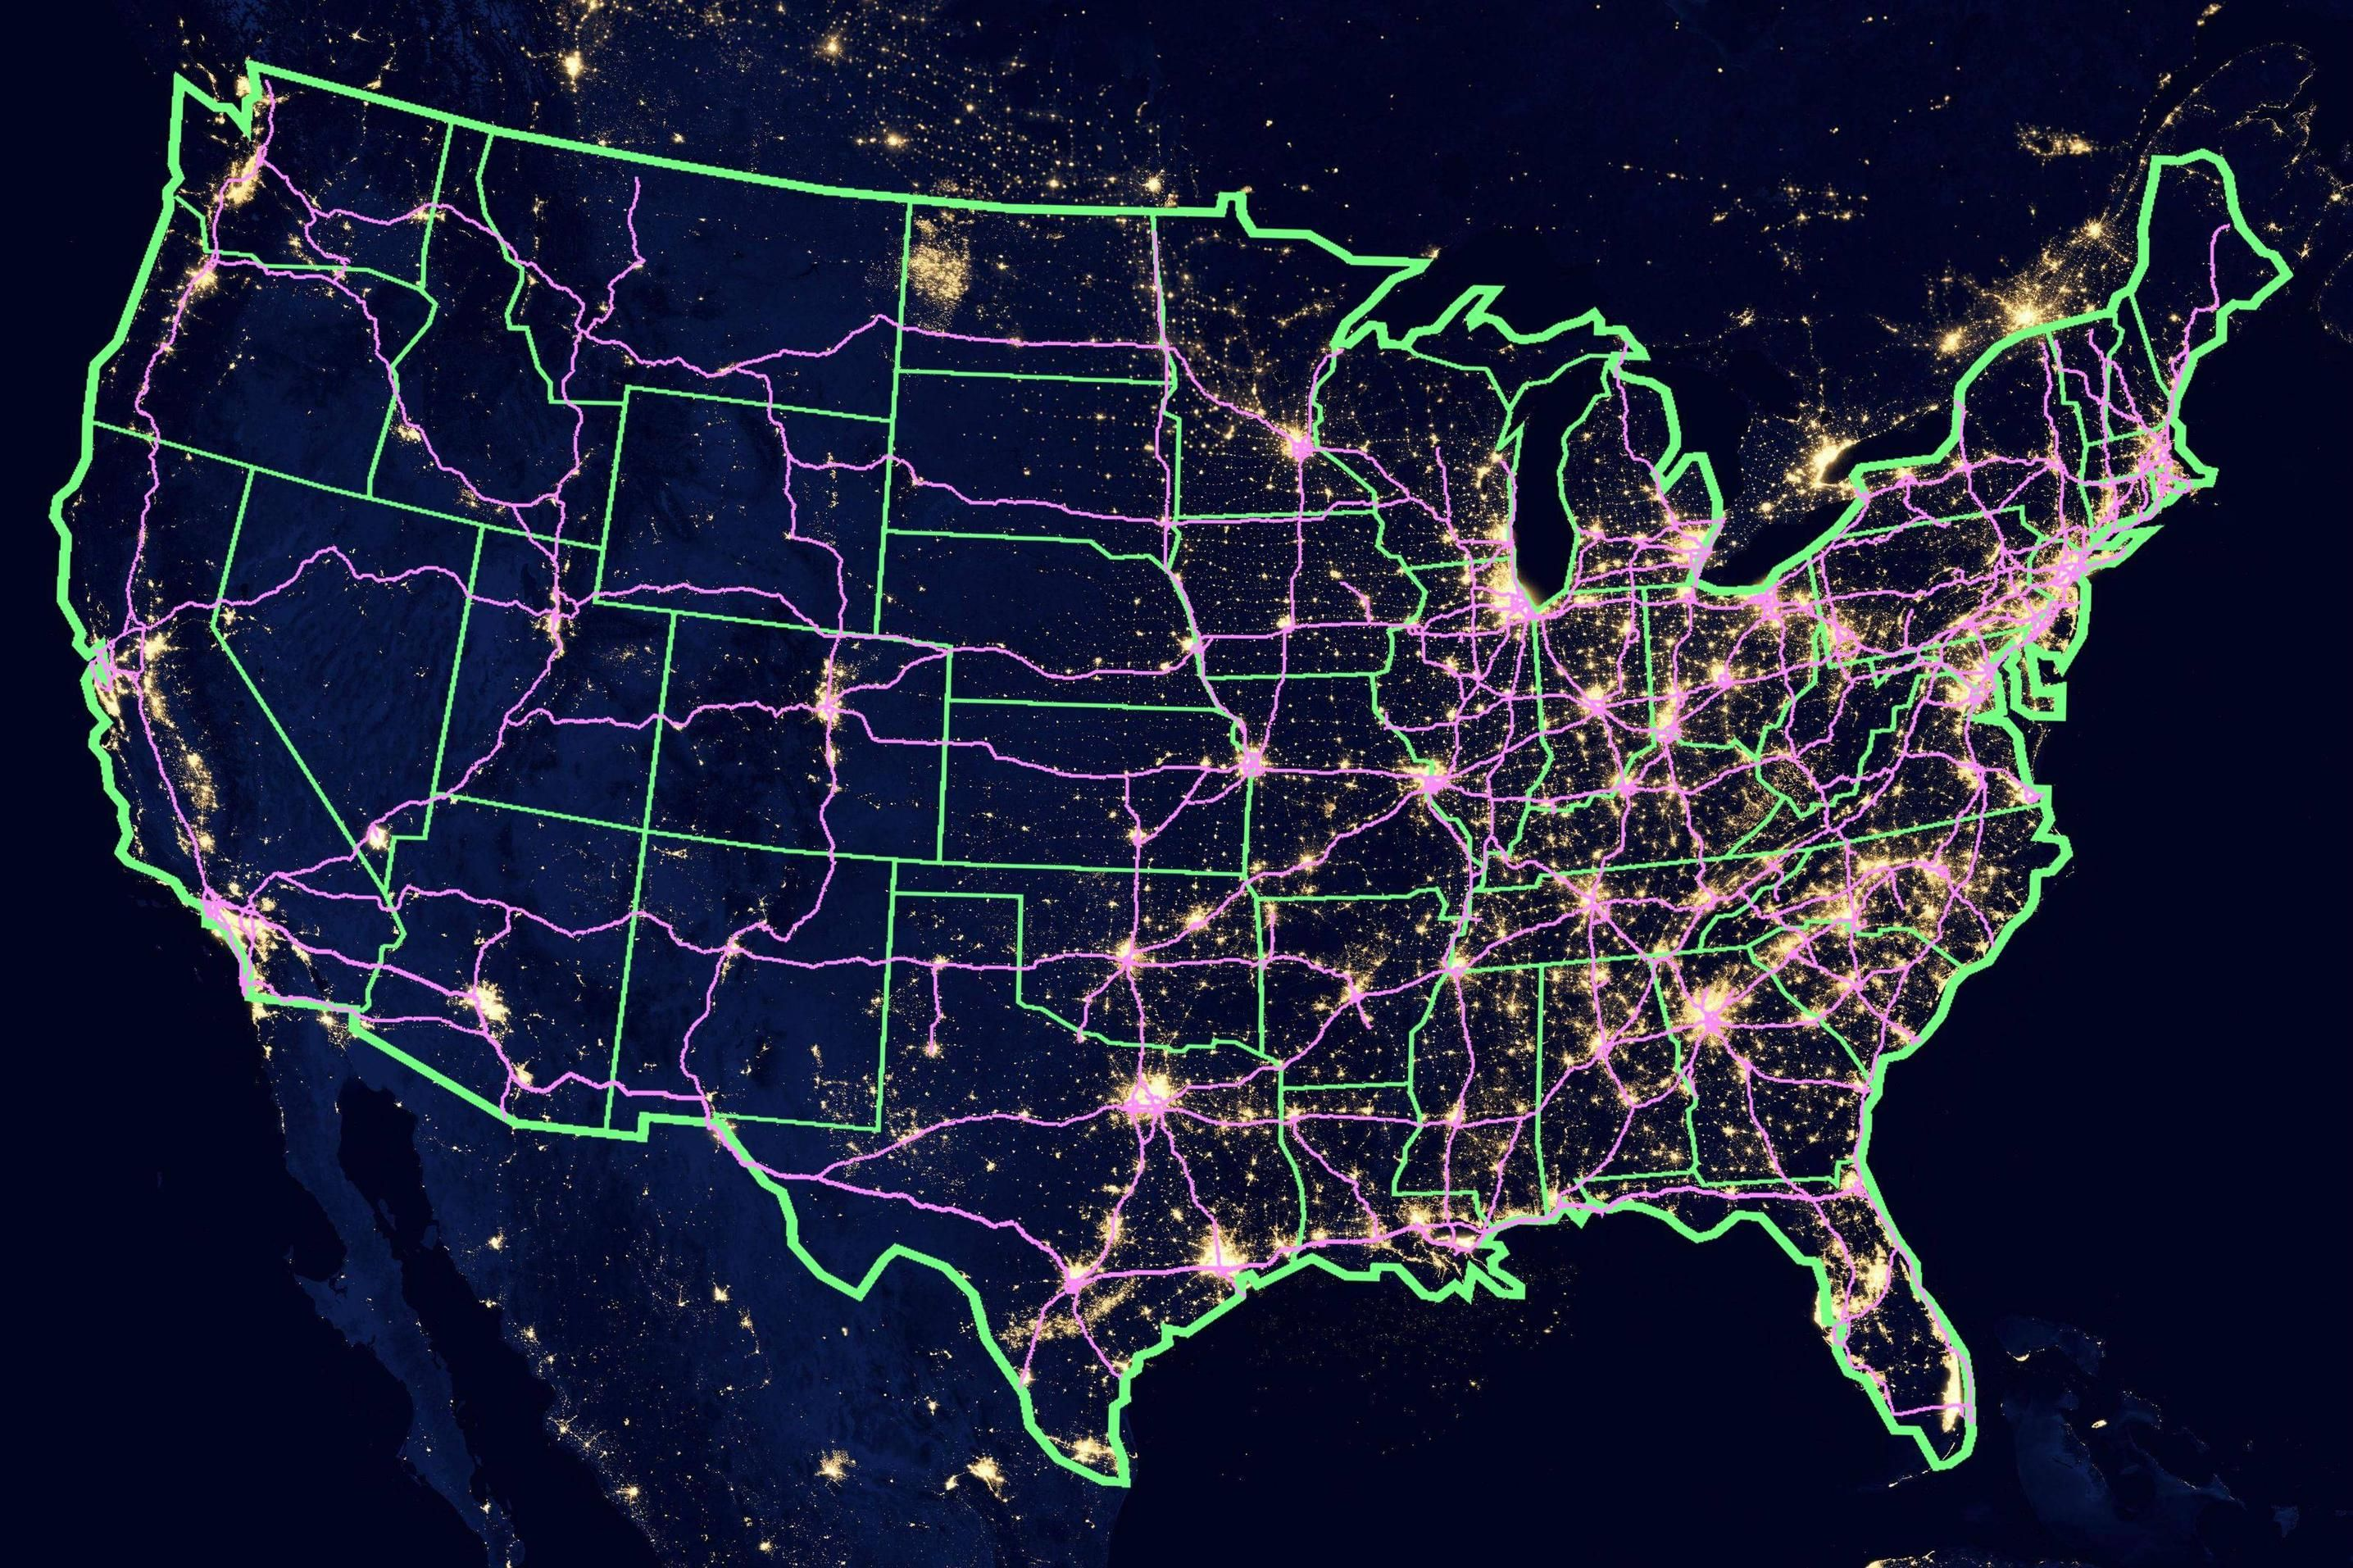 Map Of Us At Night Lights Here's a US map showing the constellation of city lights and